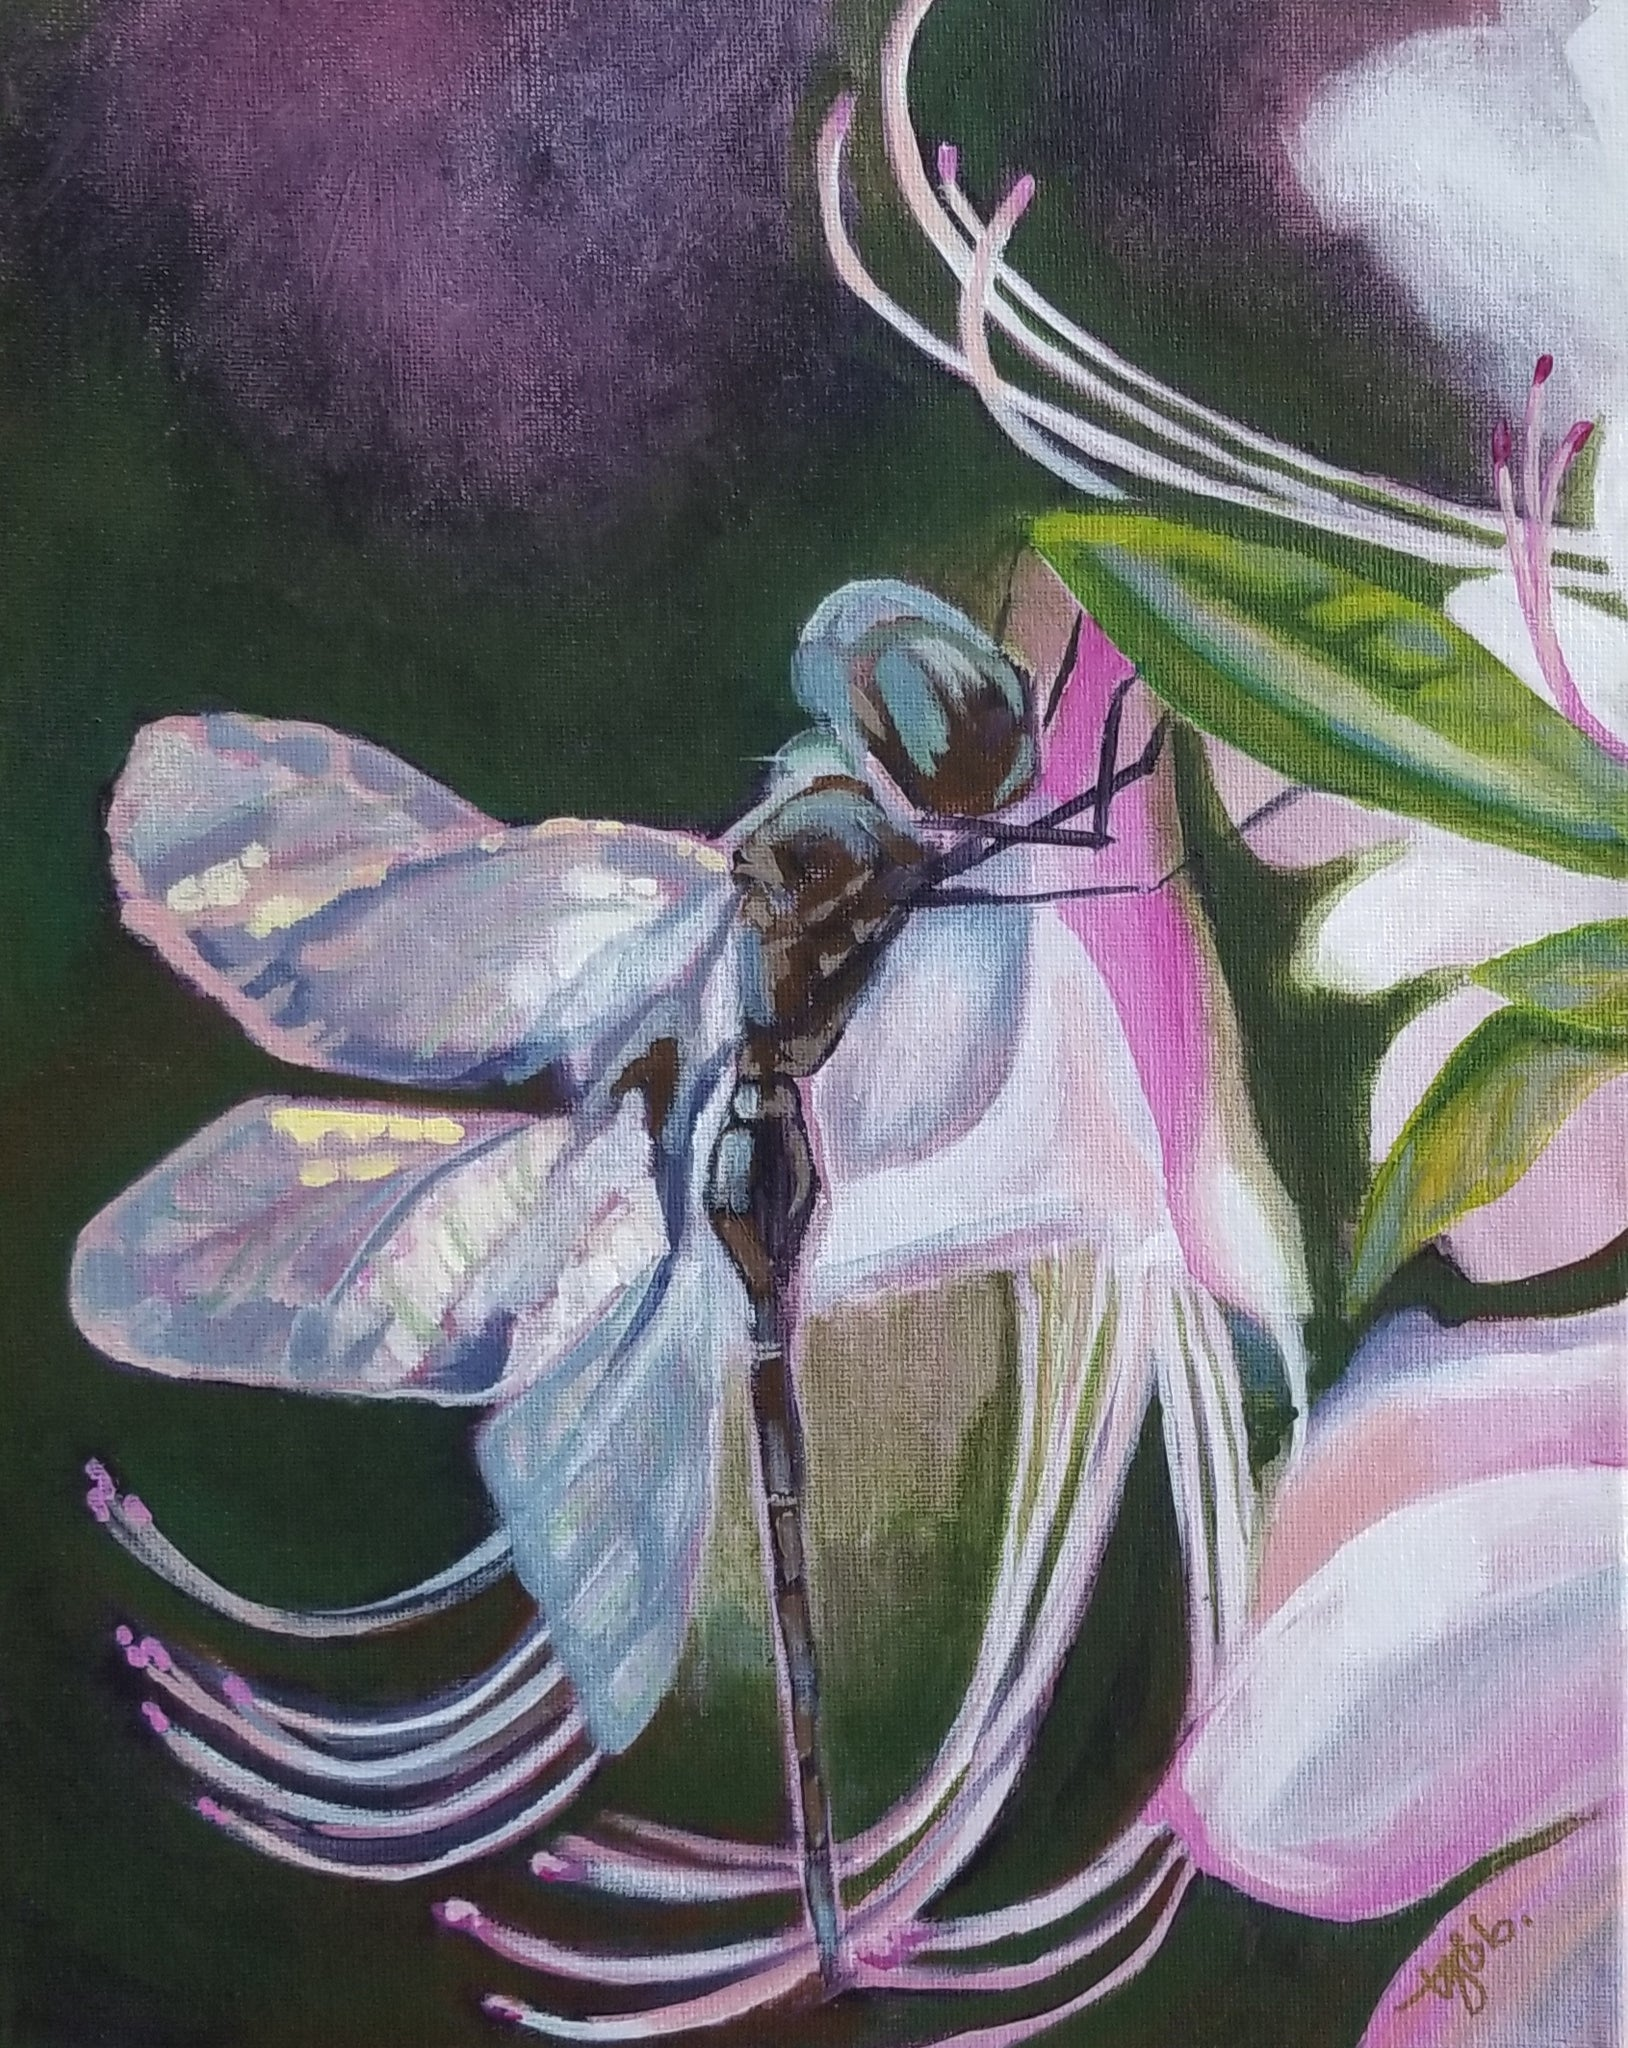 """Dragonfly II"" by Tyla Bowers"